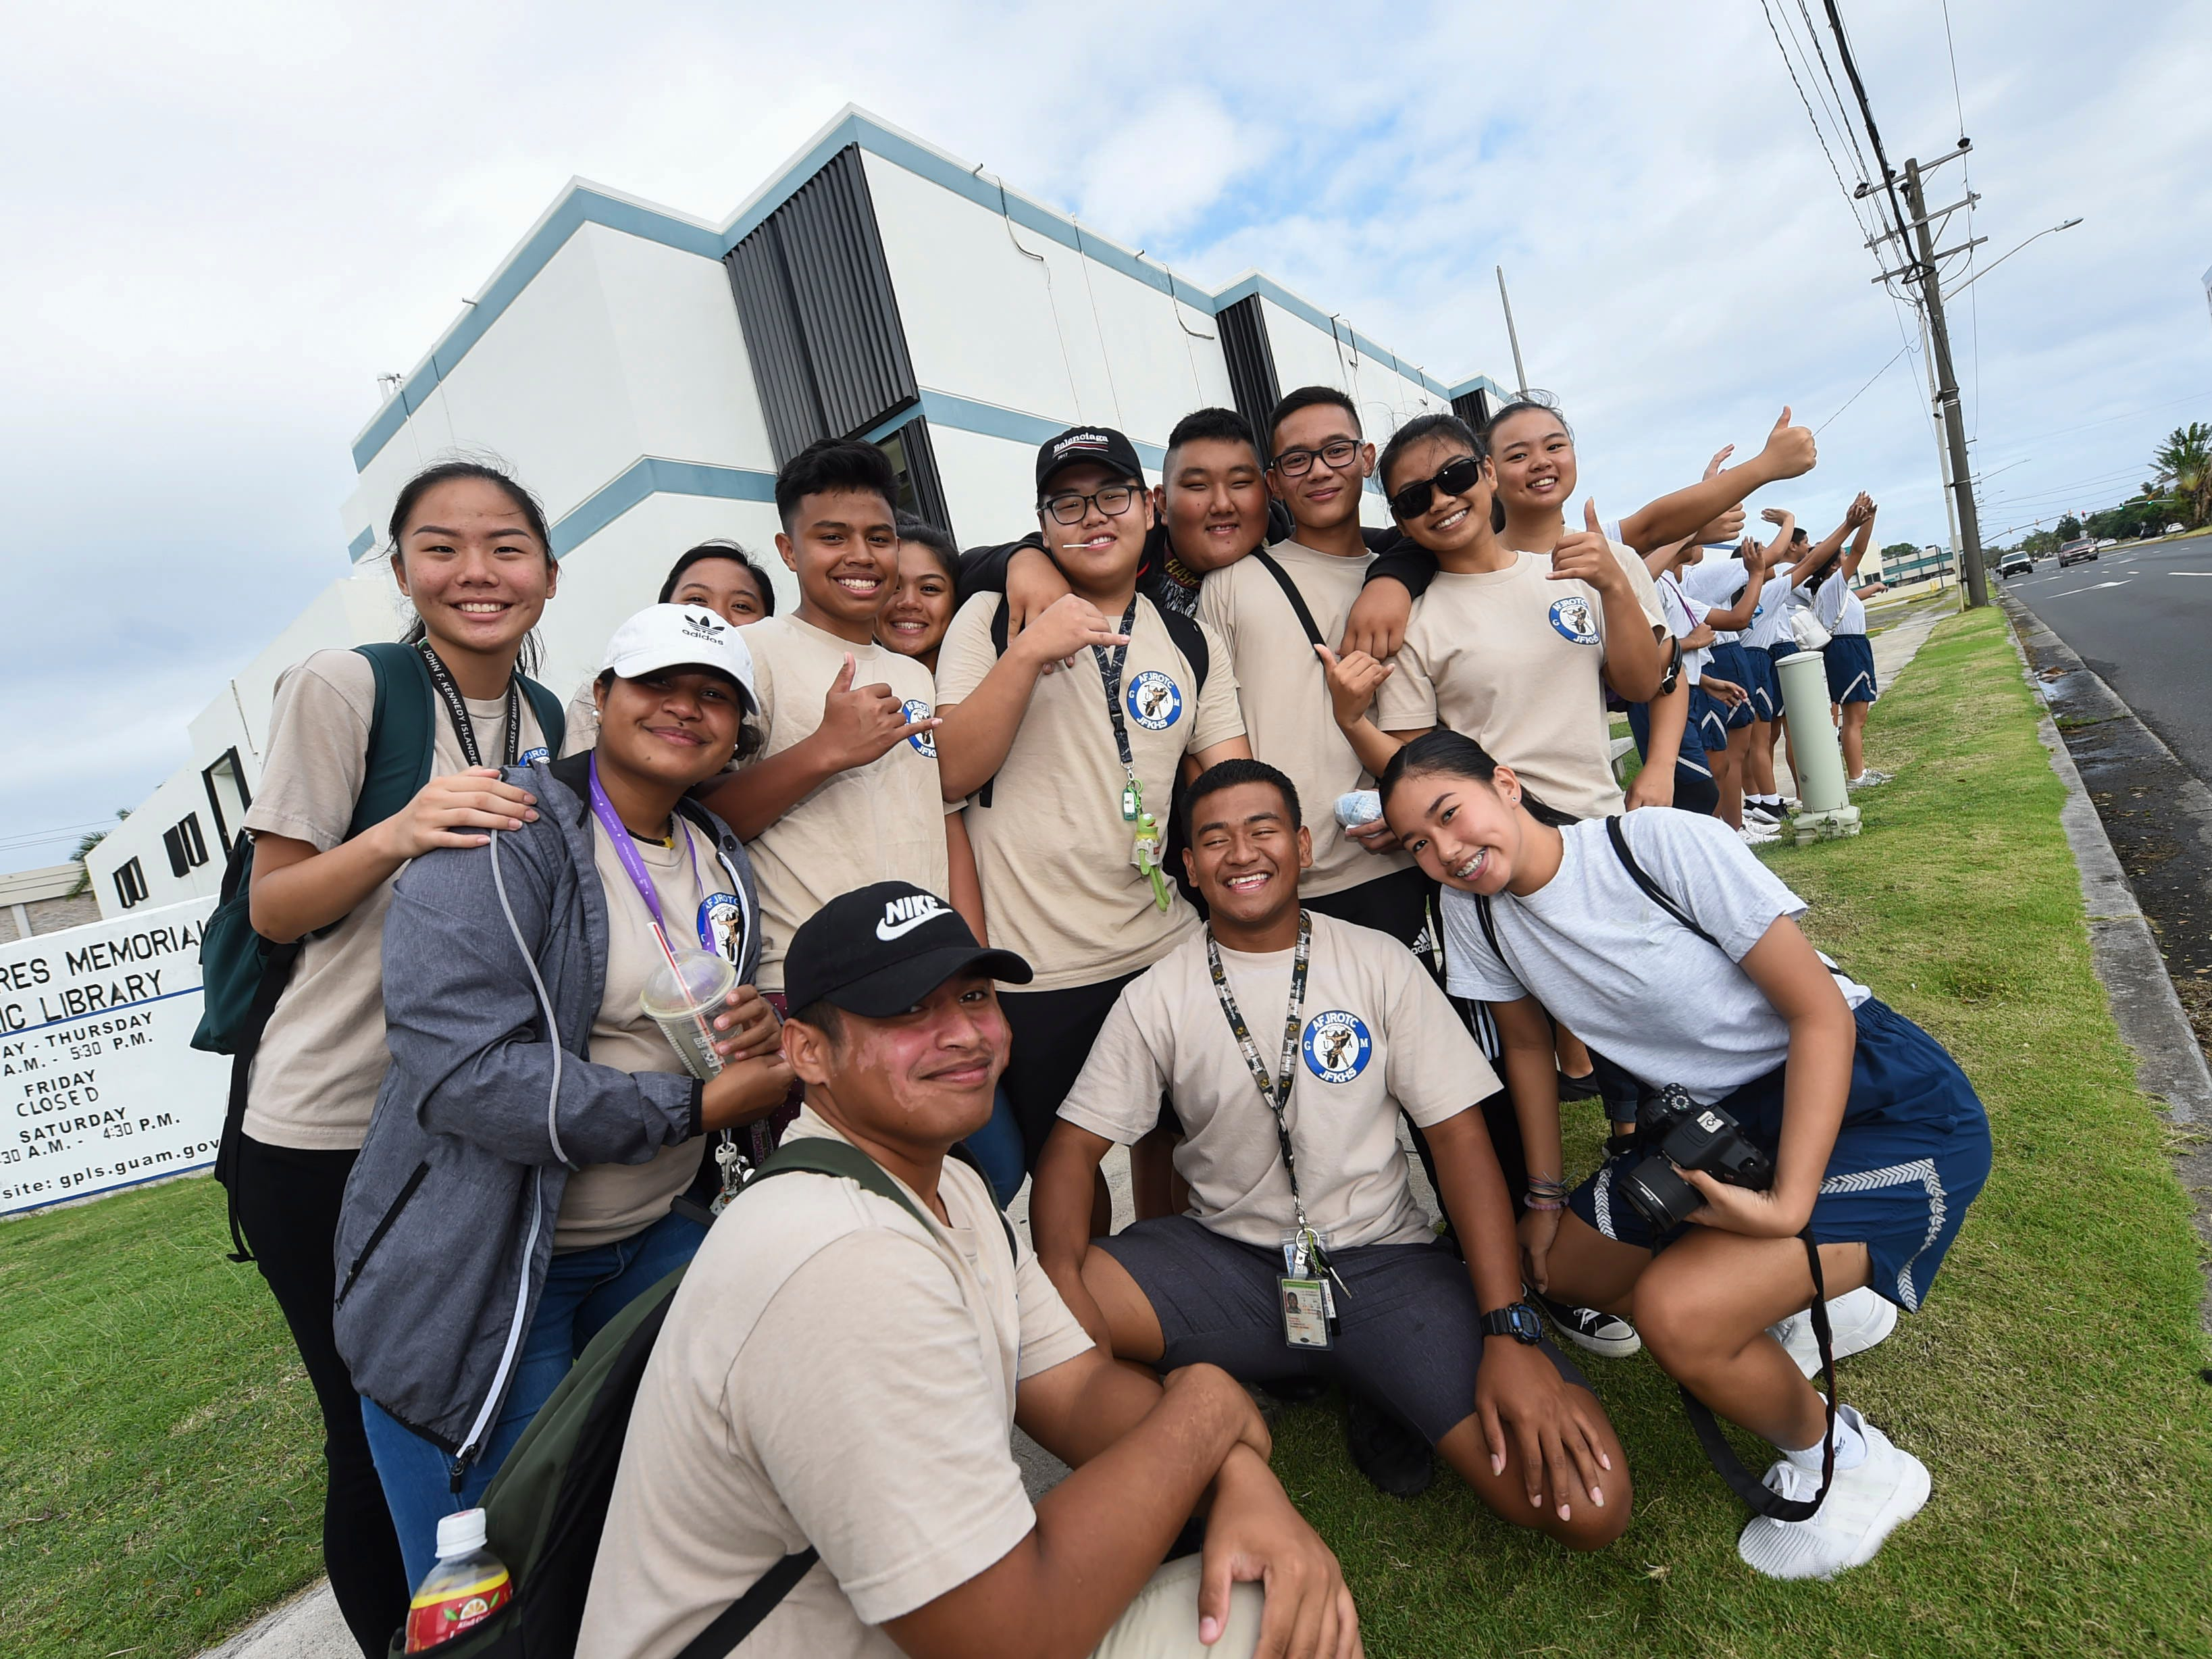 John F. Kennedy High School Air Force Junior ROTC students gather in a group during the 2019 Martin Luther King Jr. Day of Service wave in Hagåtña, Jan. 21, 2019.